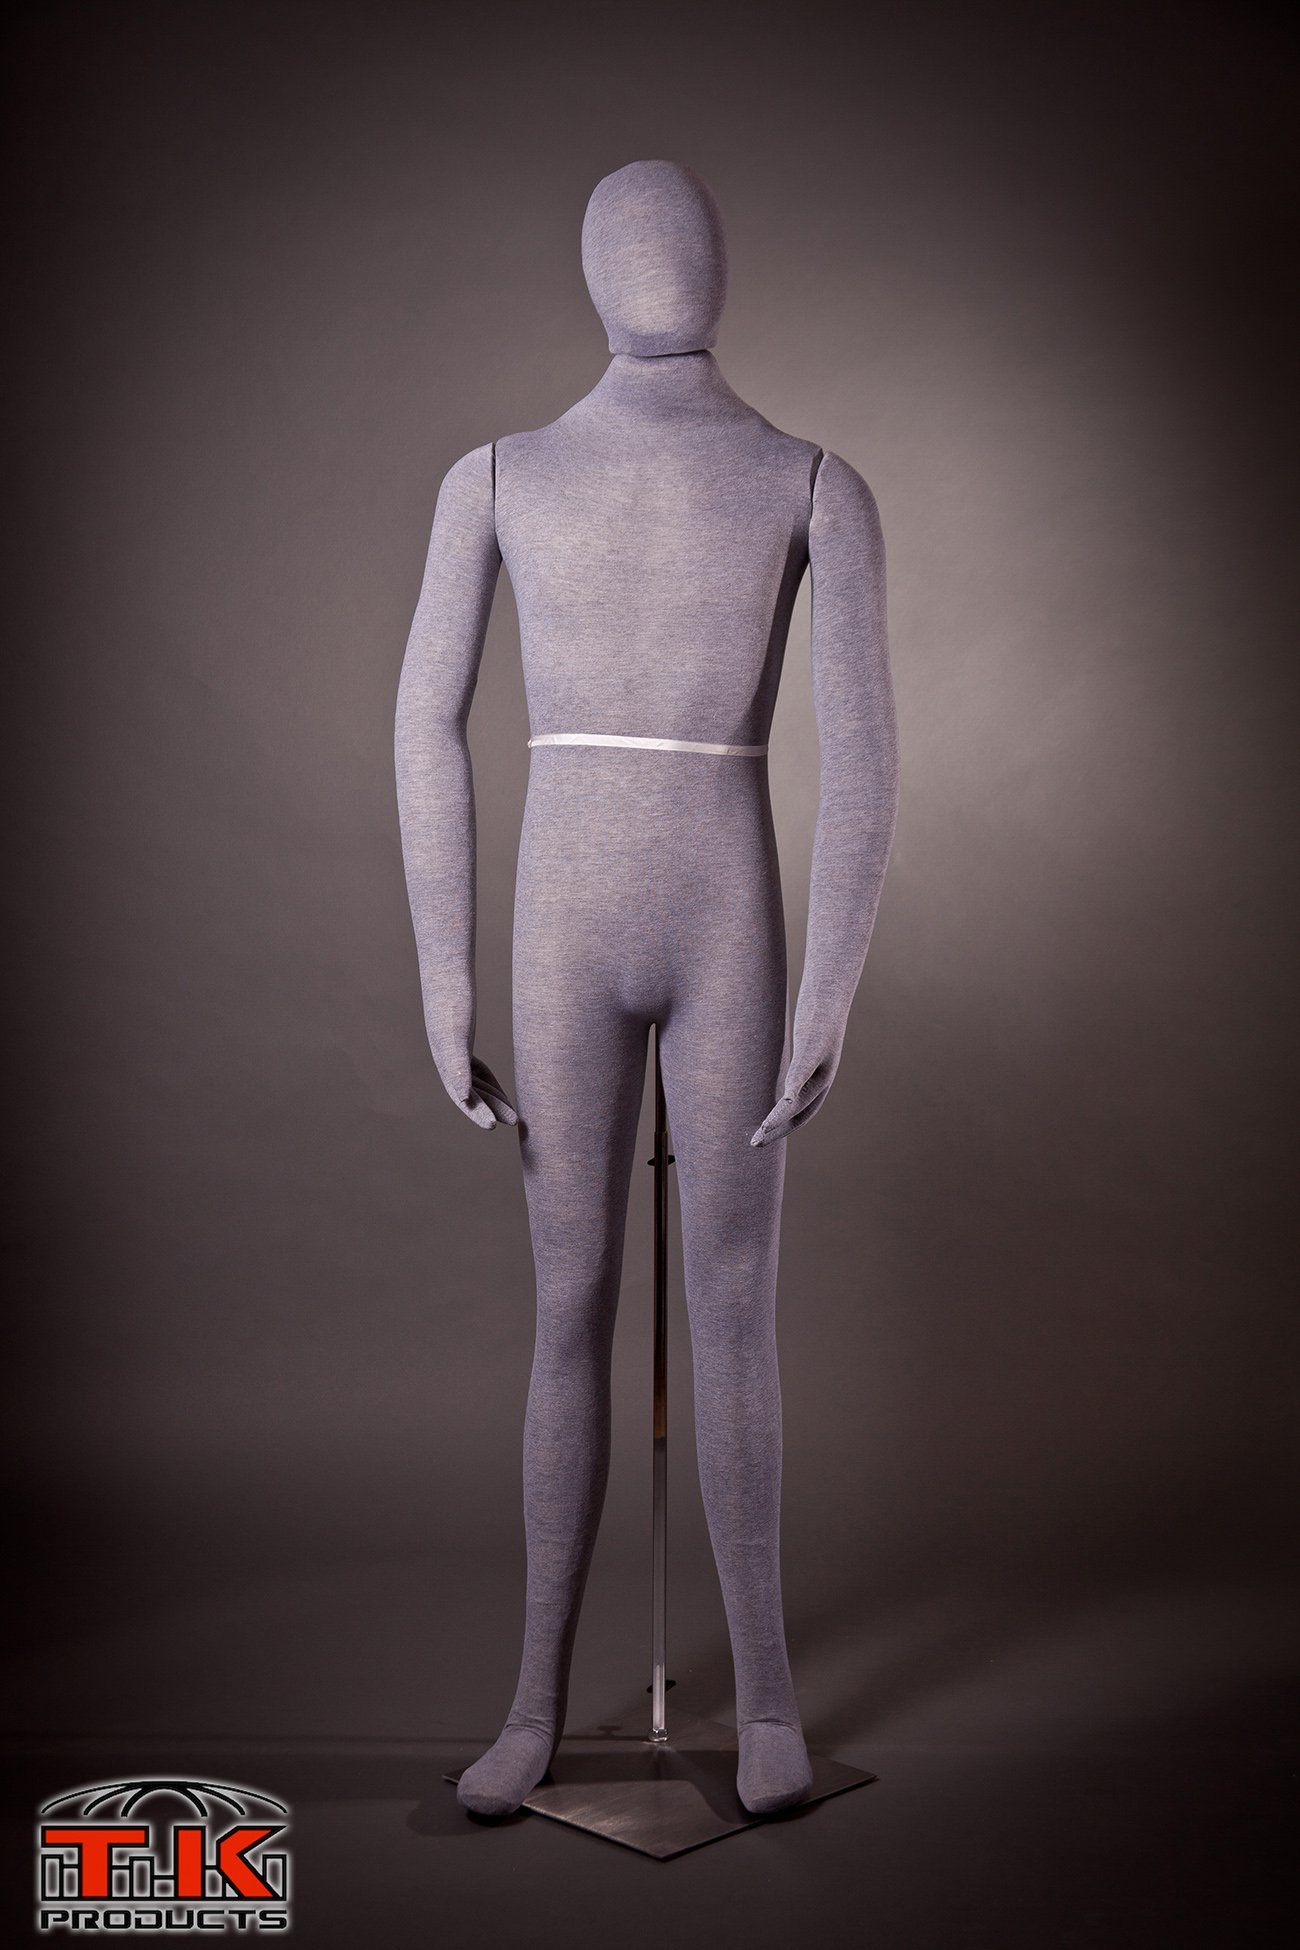 Male Mannequin, Flexible Posable Bendable Full-size Soft -Grey, by TK Products, Great for Costumes by TK Products, LLC